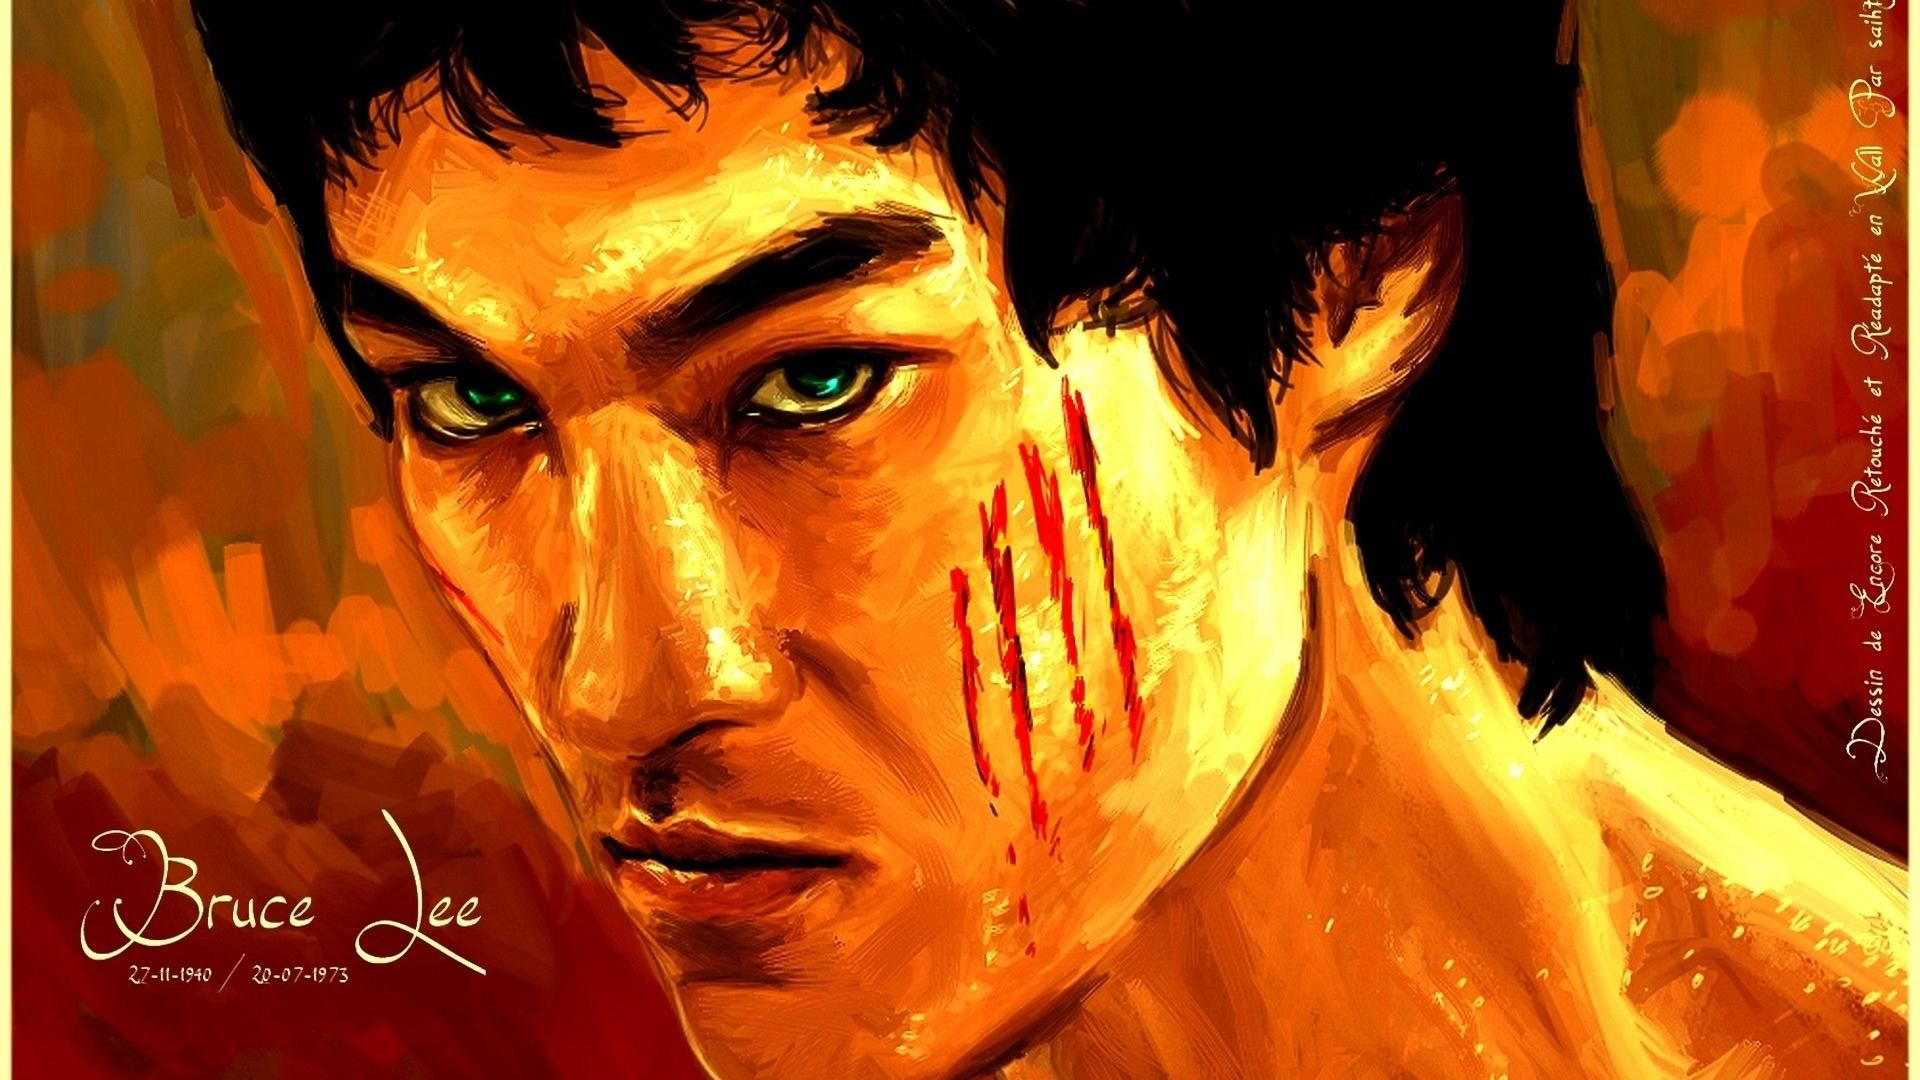 Bruce Lee Wallpapers (121 Wallpapers) - HD Wallpapers